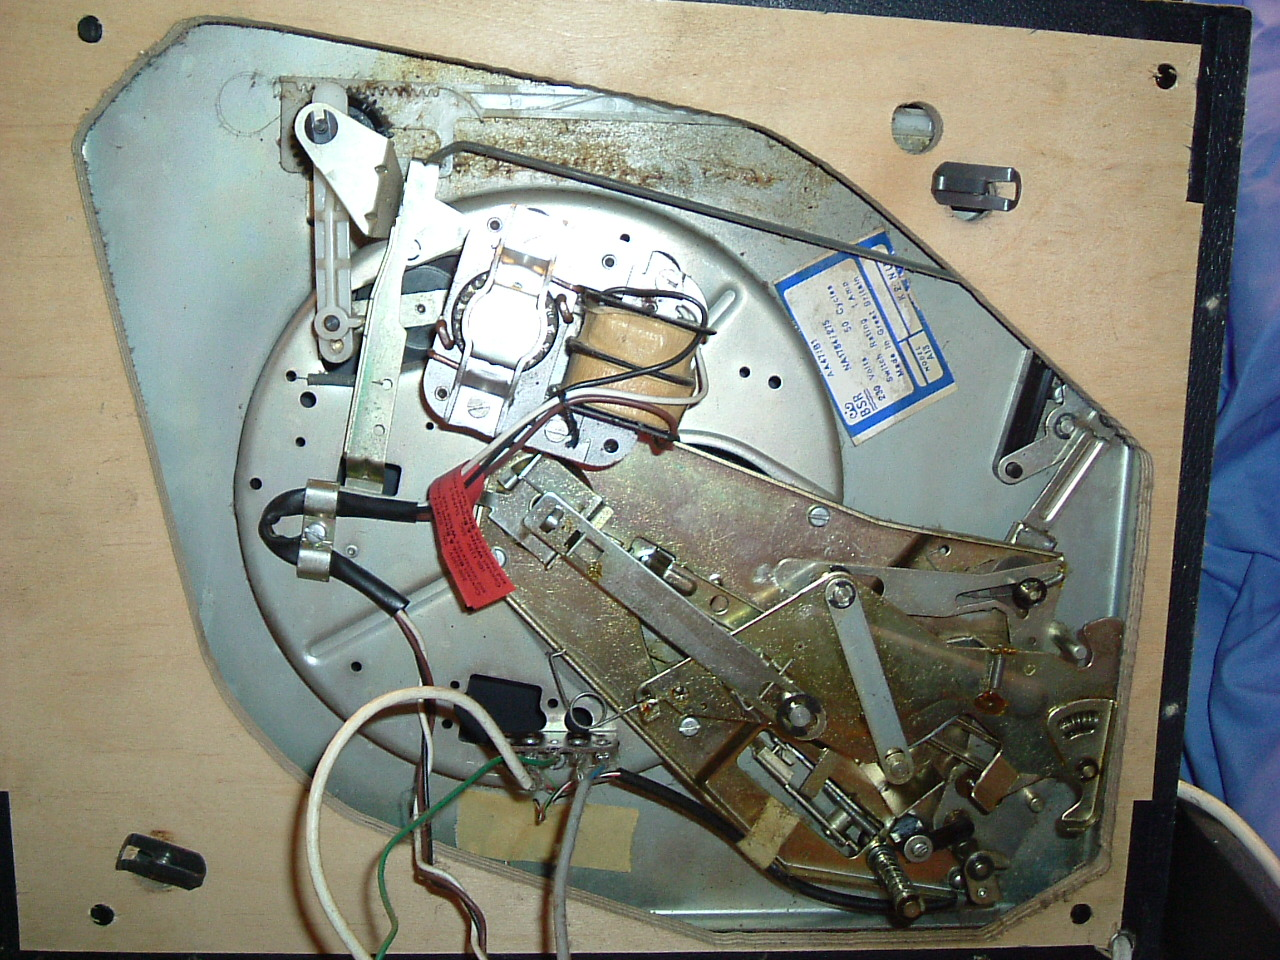 Wiring Diagram Of Portable Welding Machine together with Abb Inverter Wiring Diagram Refrence How To Wire Up An Abb Acs150 Drive further Vfd Panel Wiring Diagram in addition Star Delta Motor Connection additionally Wiring Diagram For 2011 Mitsubishi Lancer. on danfoss vfd wiring diagram